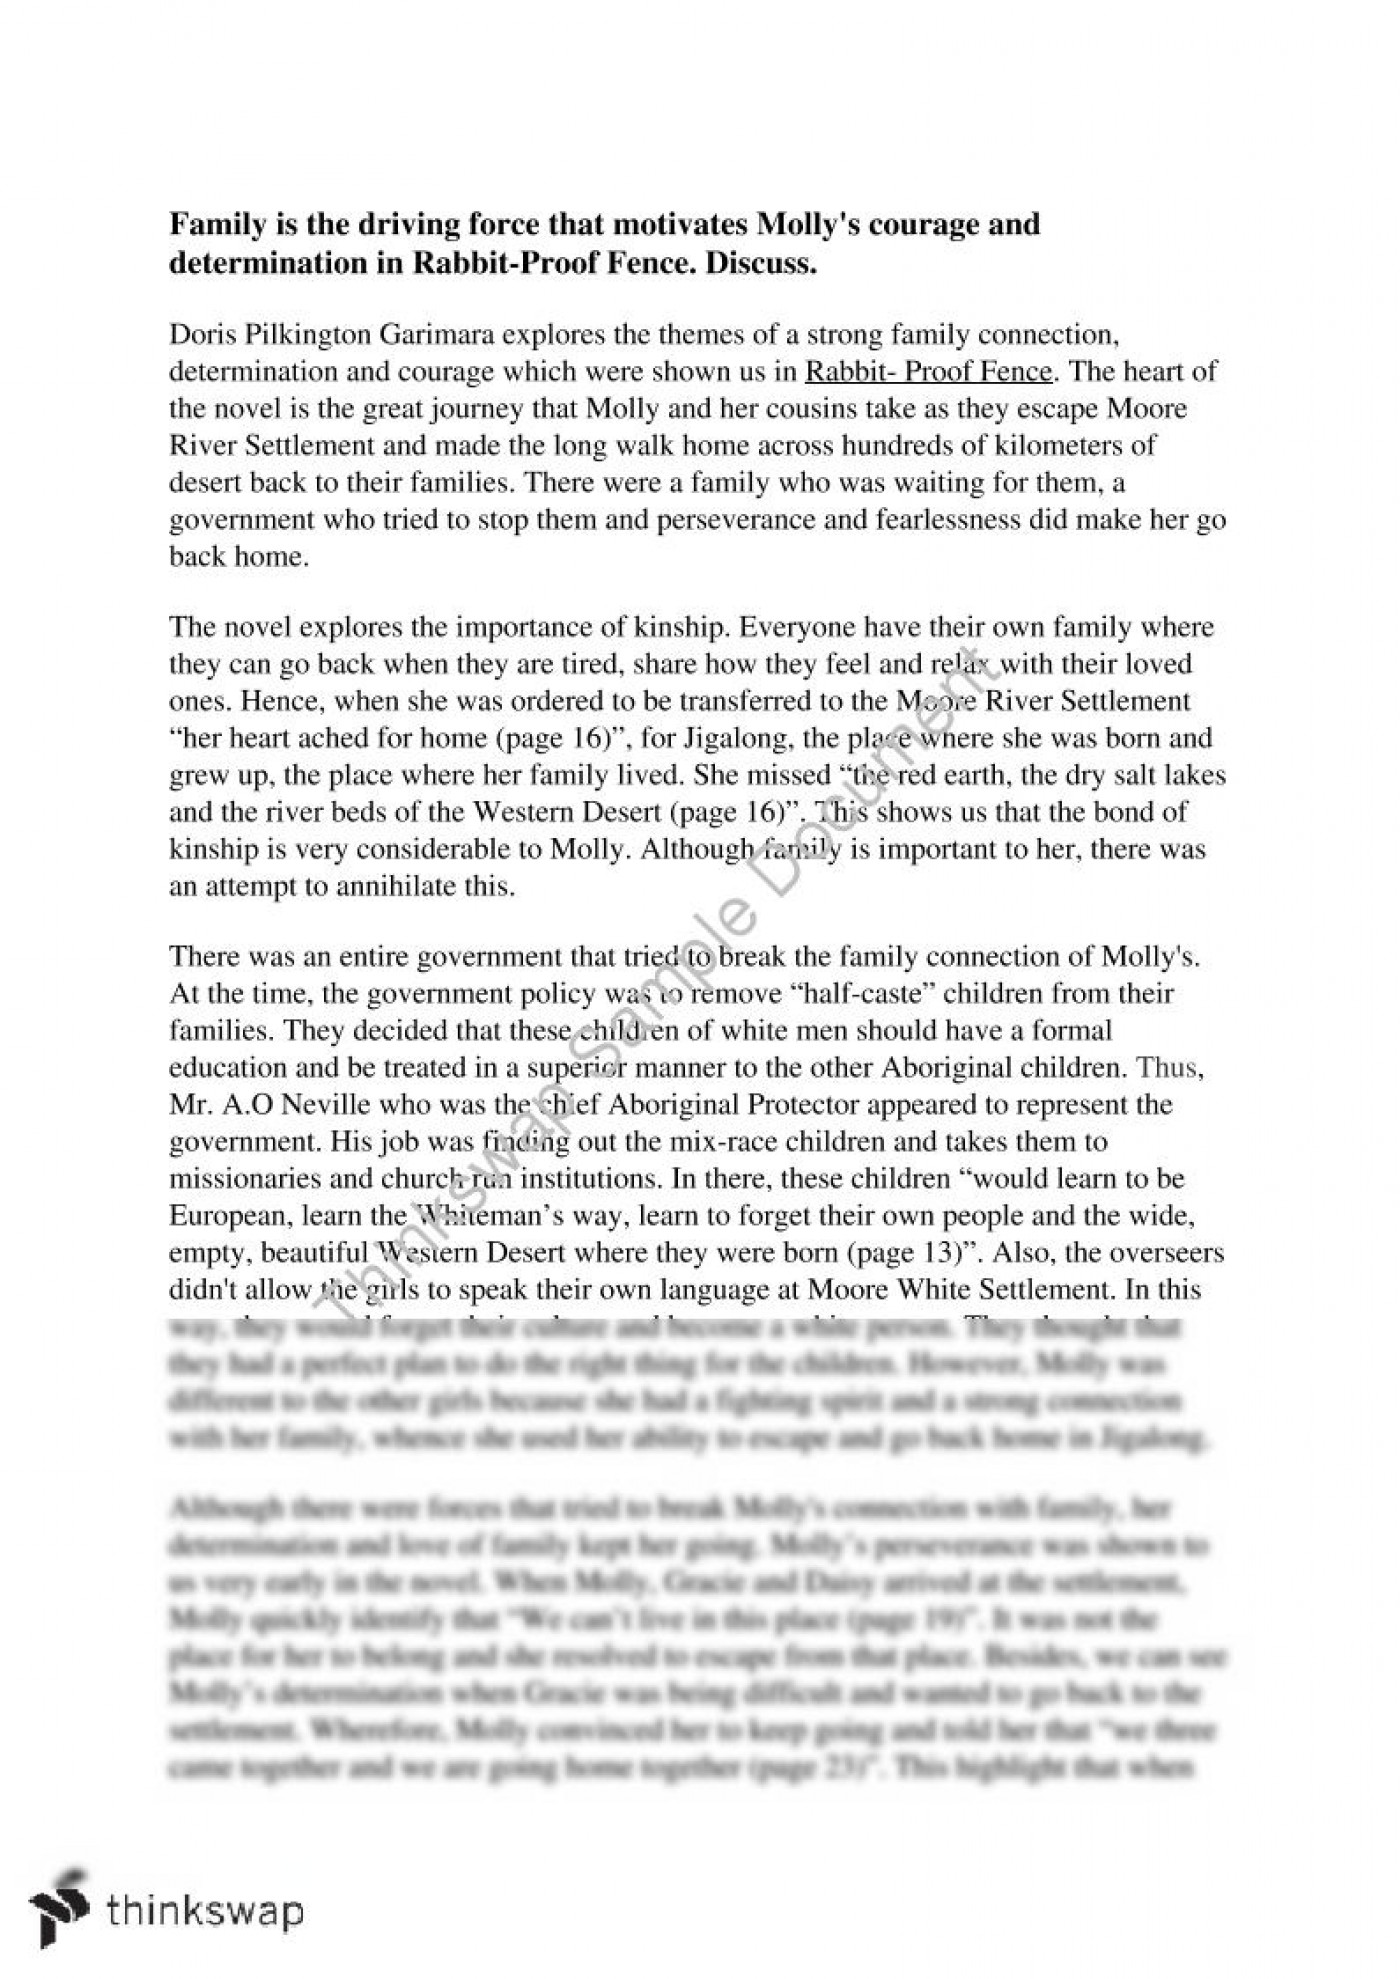 007 Essay Example 96427 Textresponseealcore Docx Fadded41 Rabbit Proof Fence Film Top Review 1400